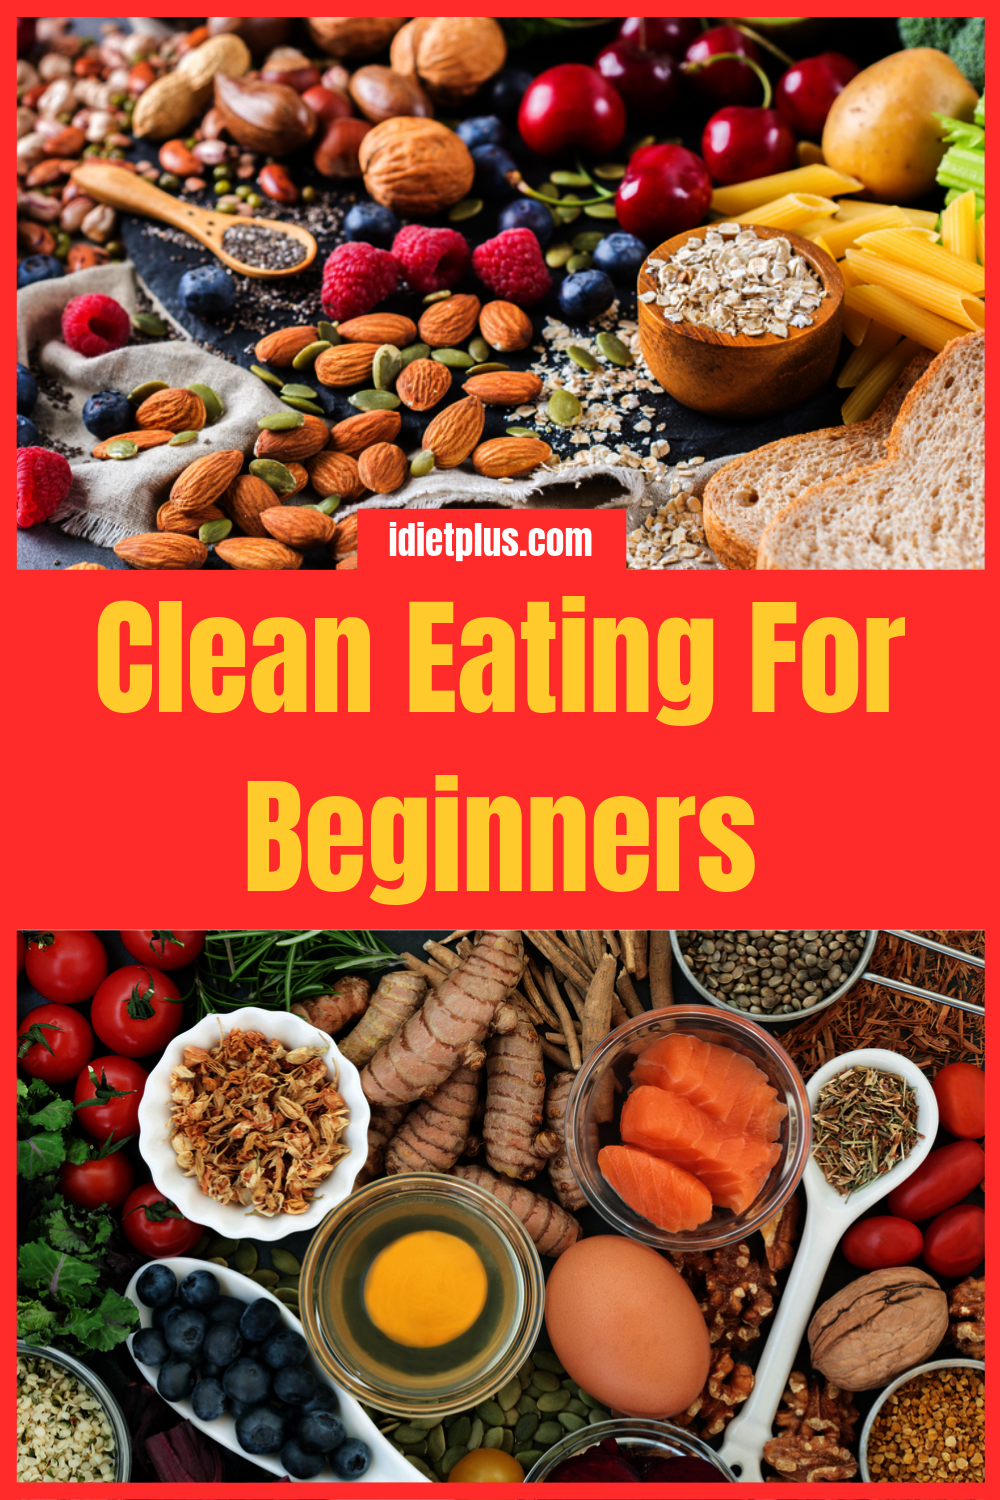 Healthy Diet Tips Pdf every Healthy Eating Recipes To Gain Weight. Easy Clean Eating Recipes For Beginners Australia #cleaneatingforbeginners